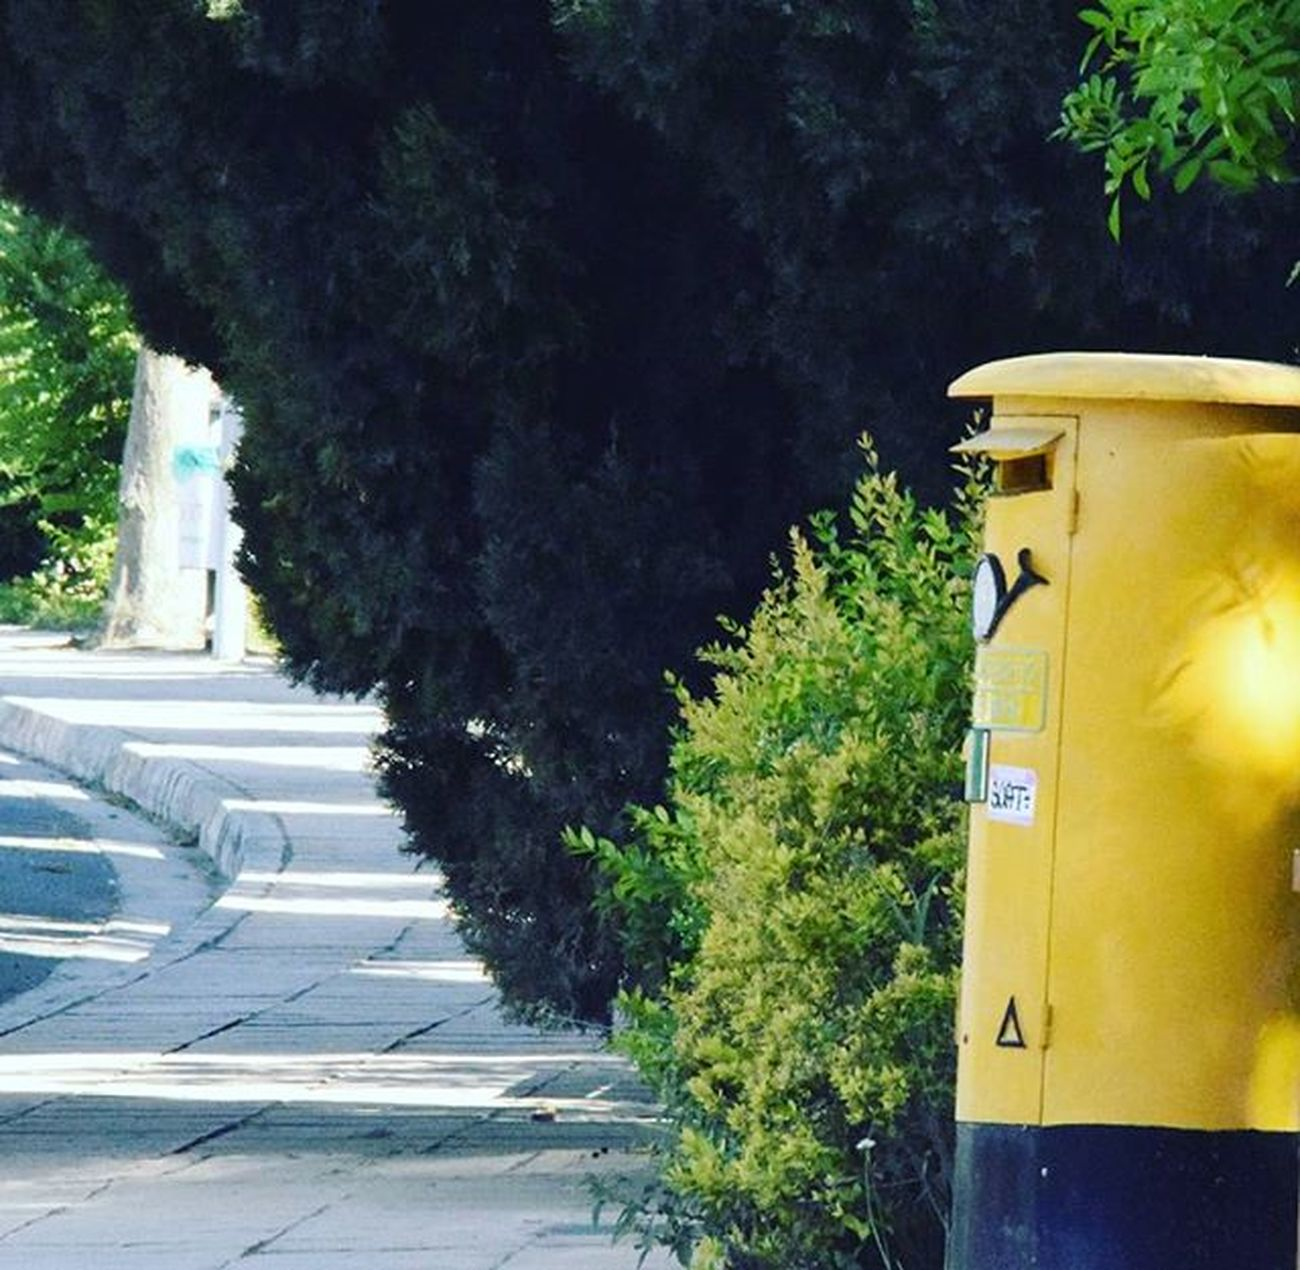 Postbox Yellow Green Road Street Smile Delivery Cyprus Hitfor100fans Hitfor100follows Clickfor500gains Followme Ifollowbackinstantly